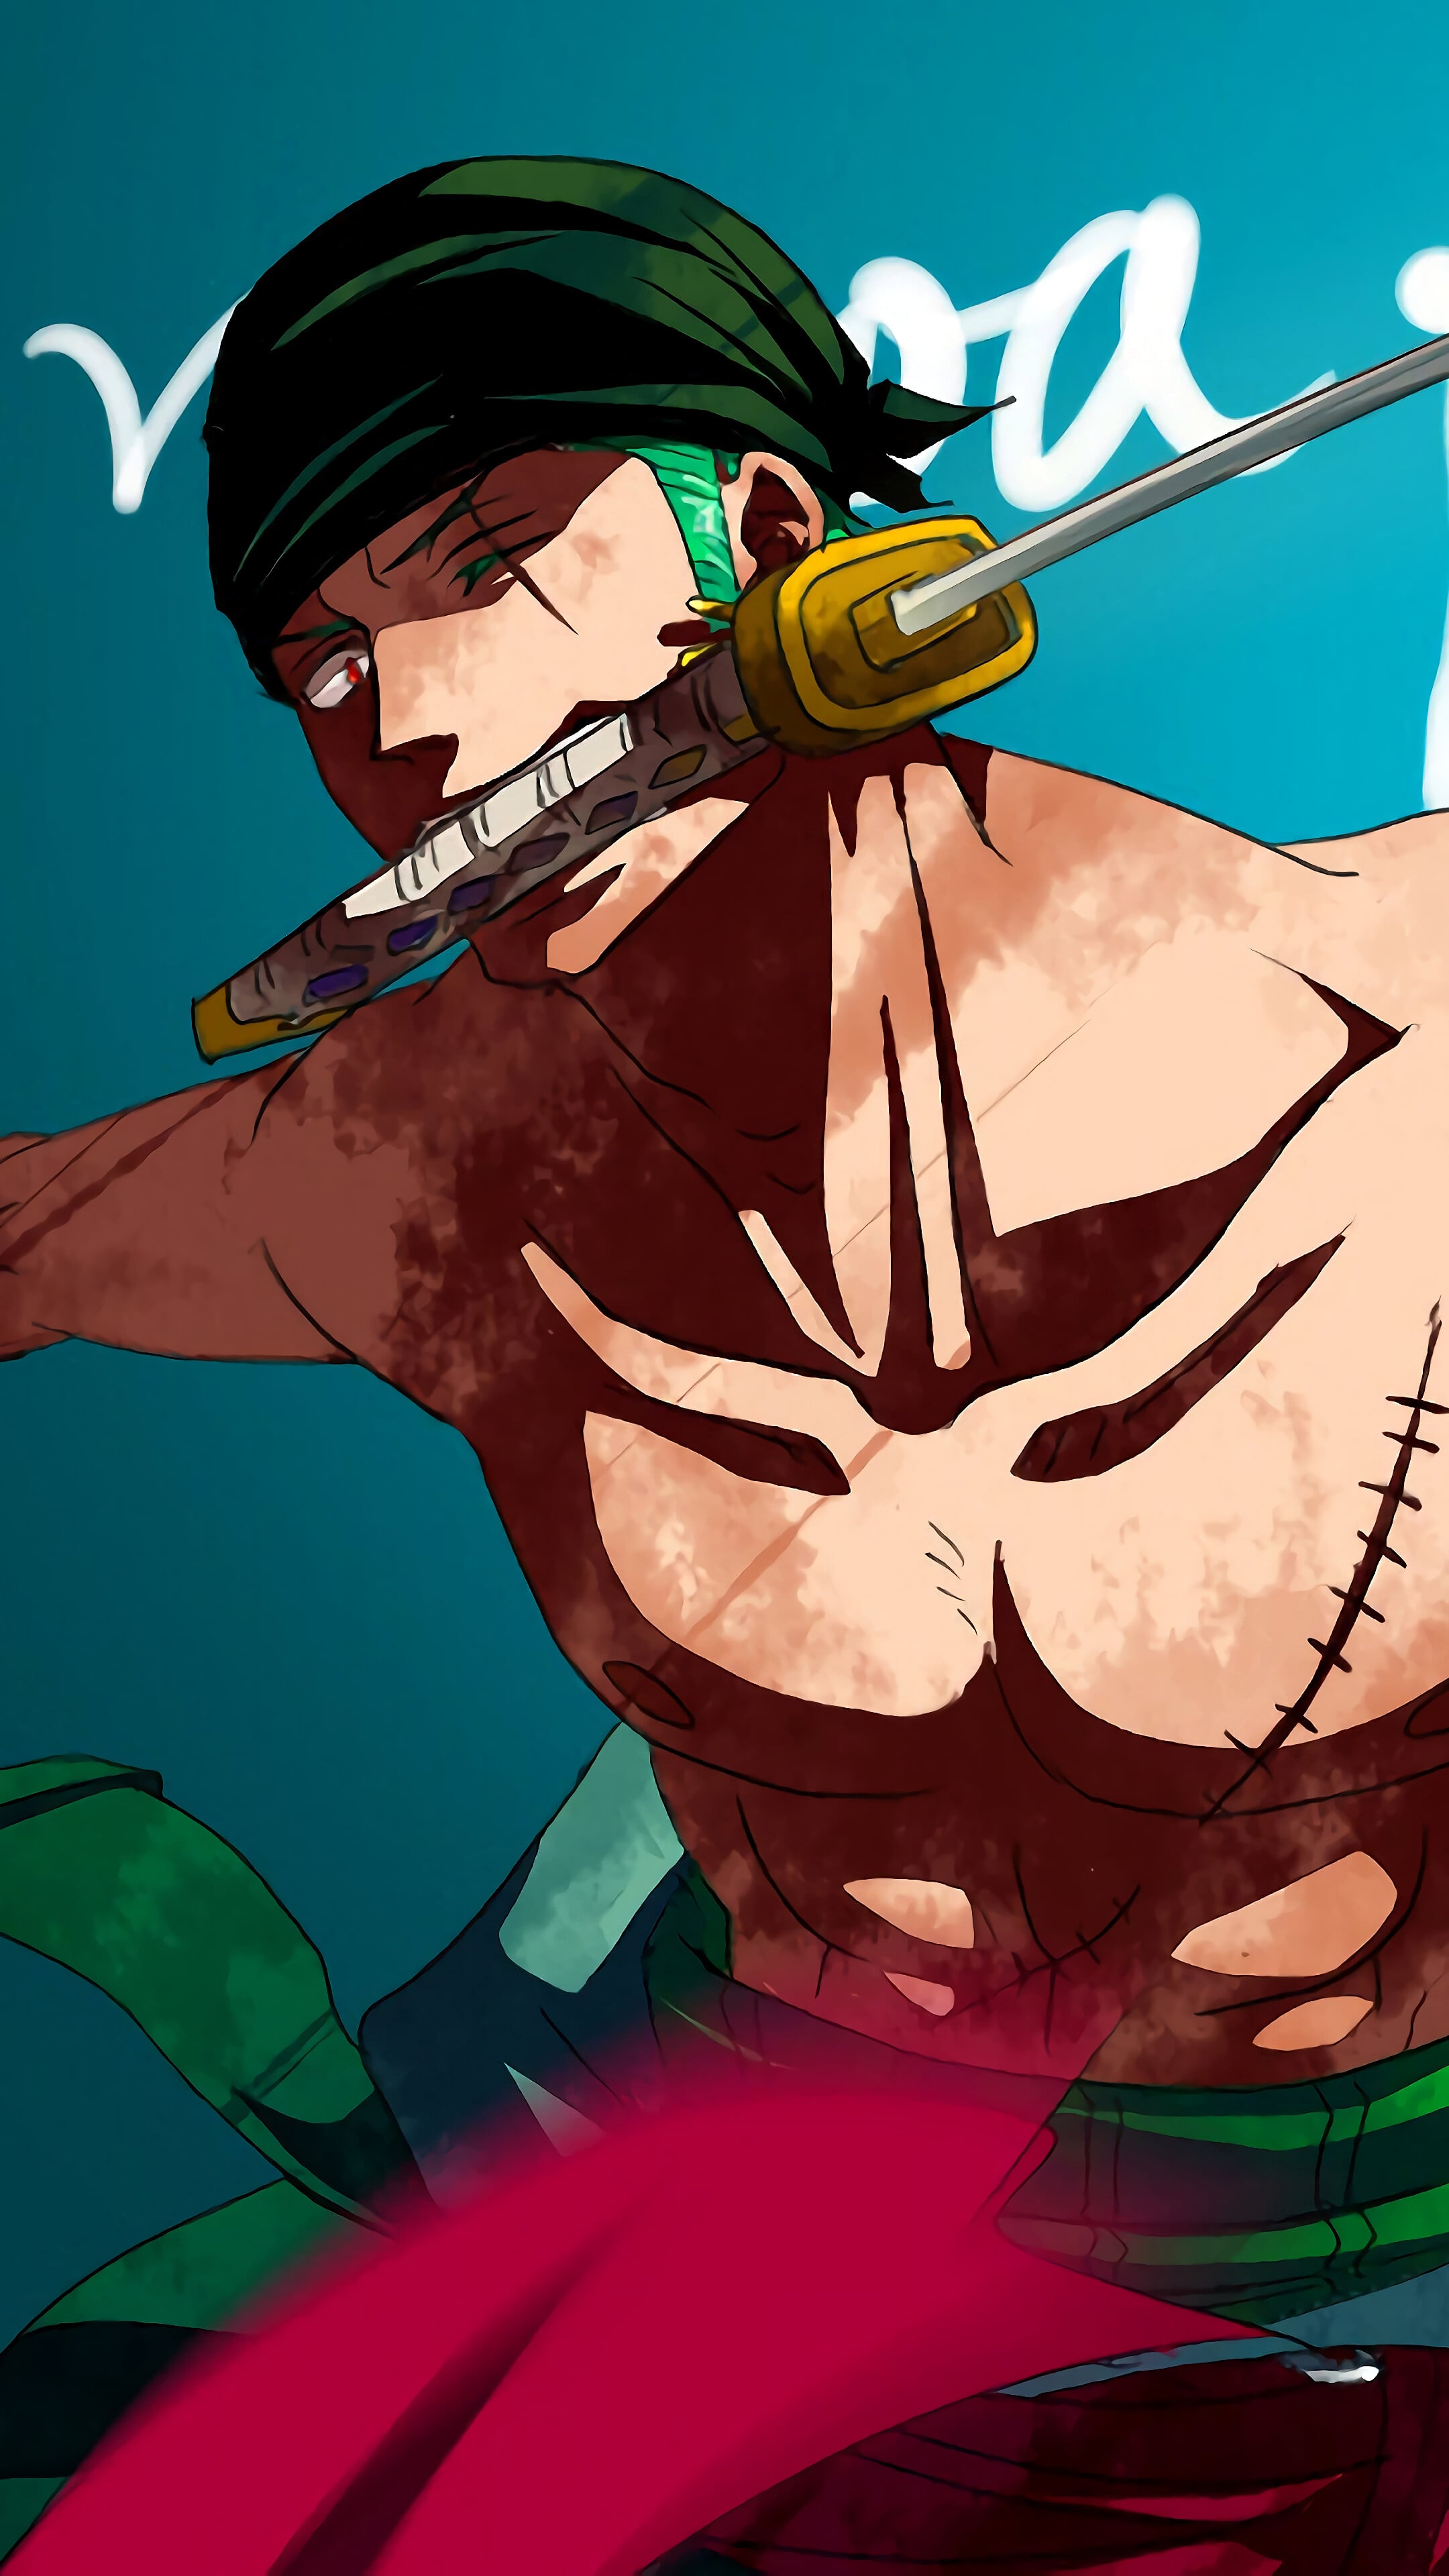 Zoro Wallpaper Android Kolpaper Awesome Free Hd Wallpapers